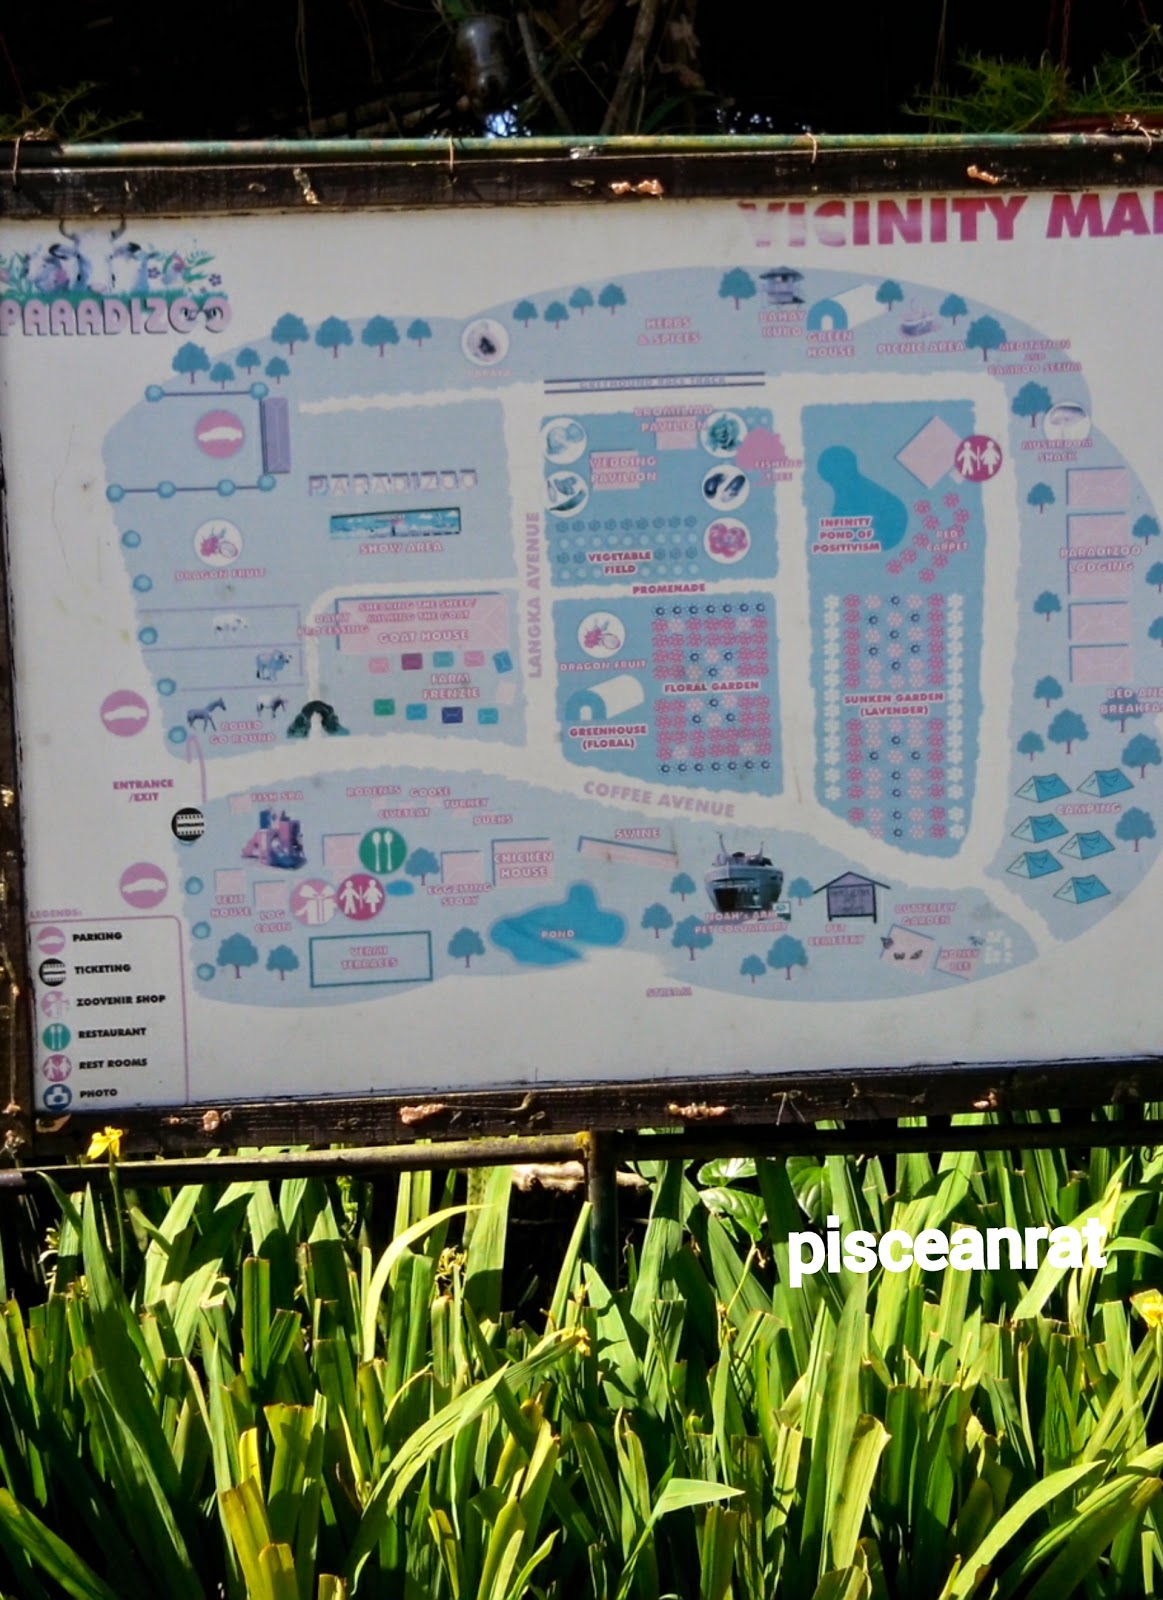 vicinity map, paradizoo,